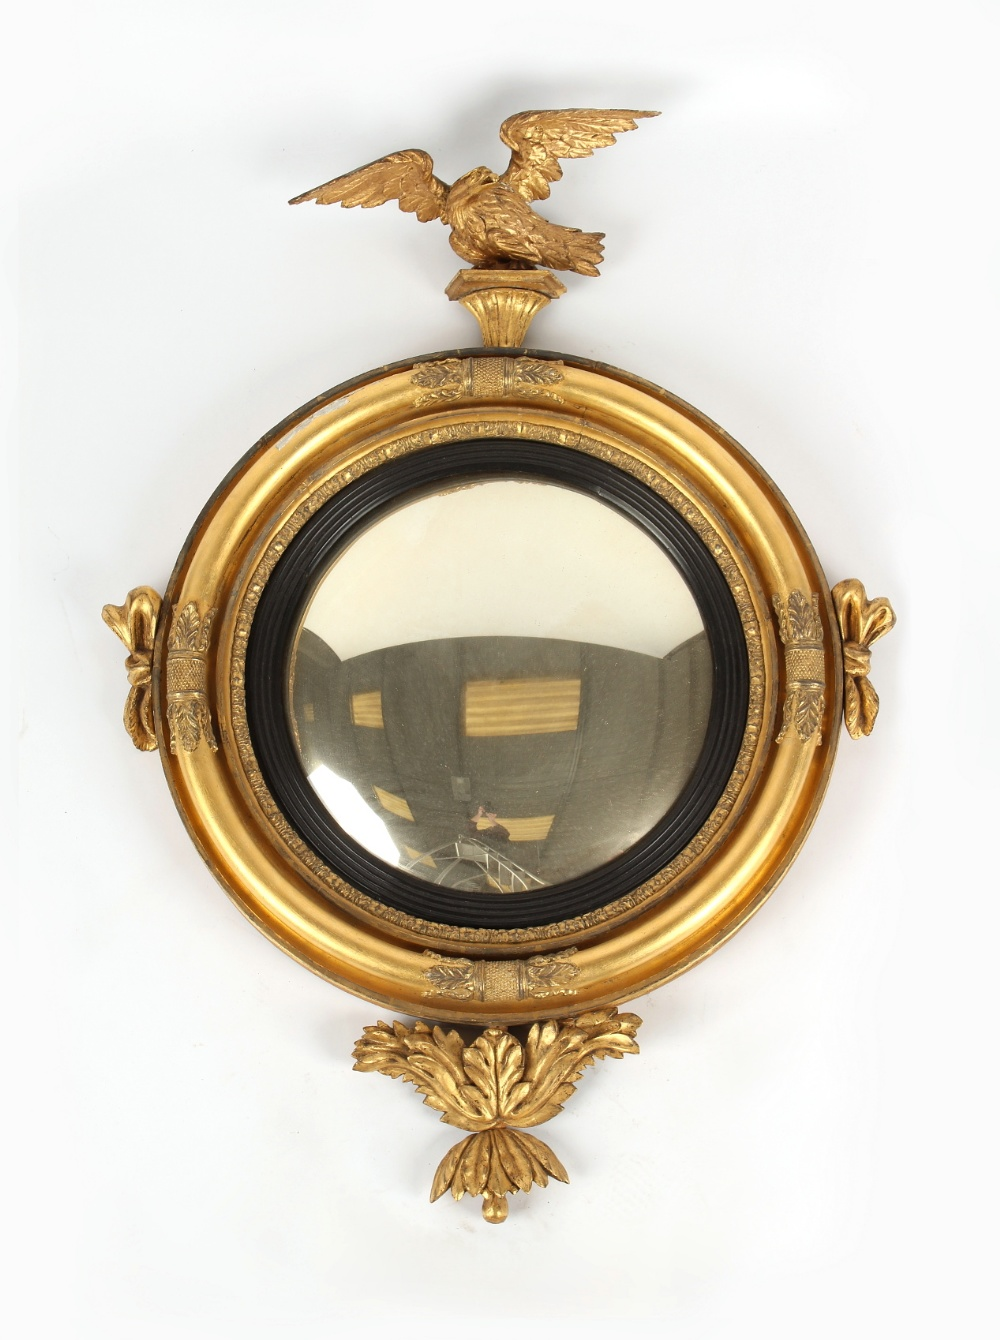 A 19th century carved giltwood framed convex mirror with eagle cresting & acanthus below, 44.